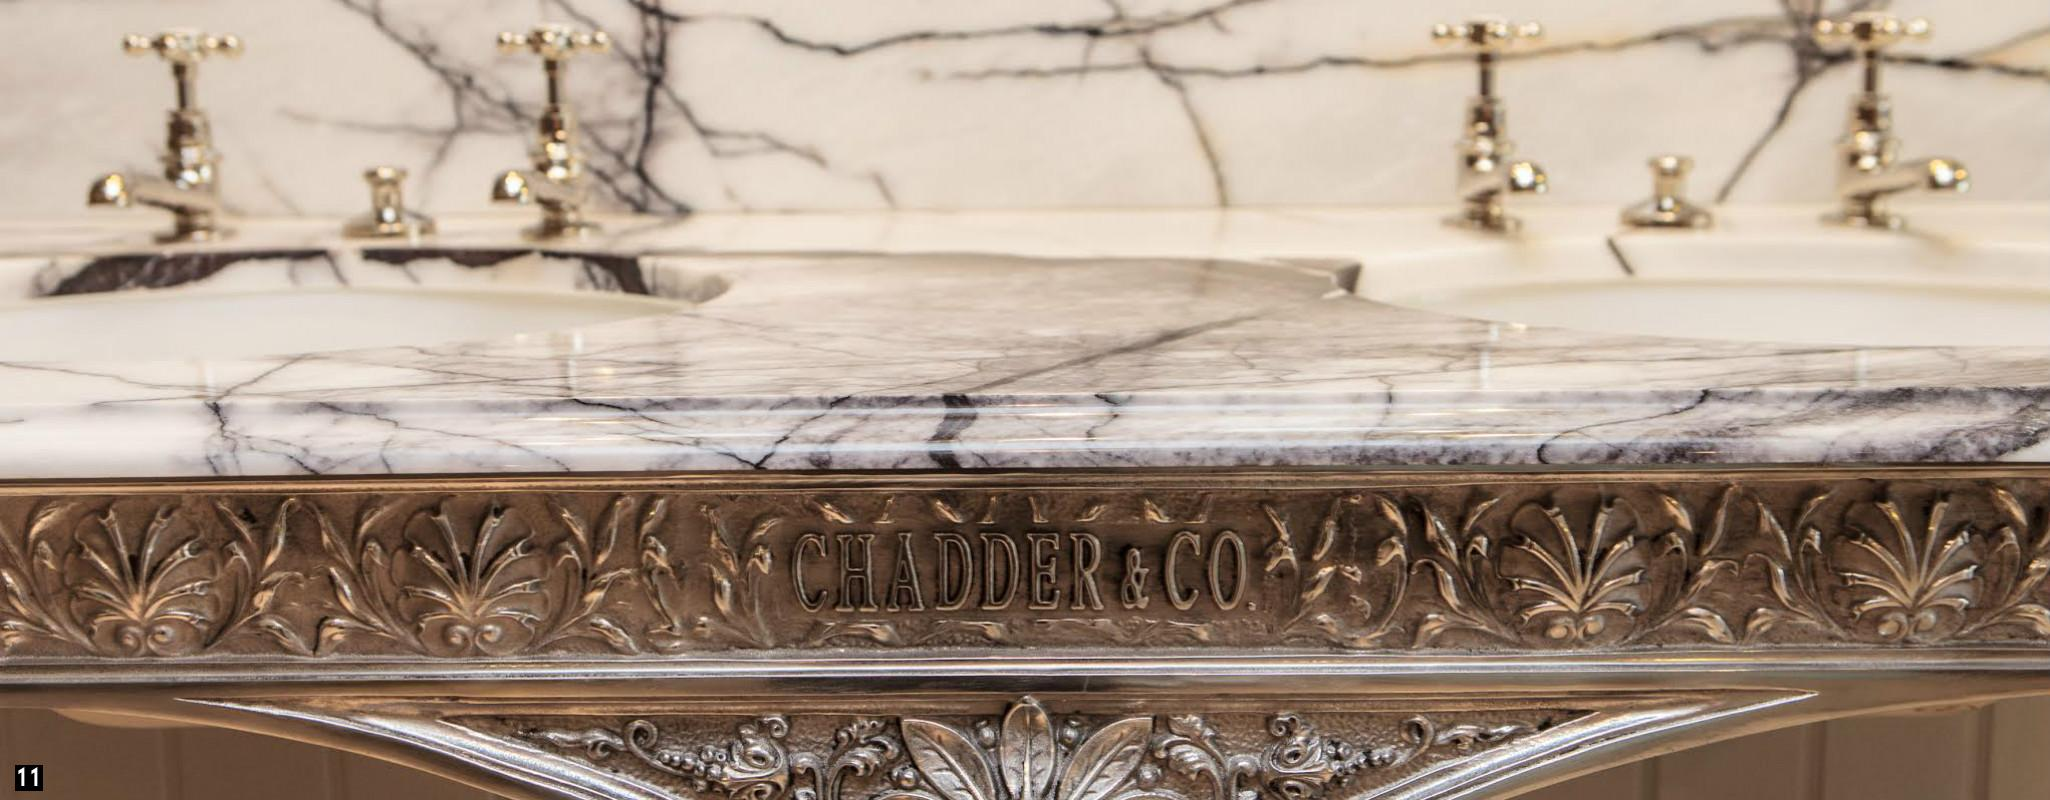 Bespoke Marble Basins , Nickel Taps and Fittings , Bespoke Cisterns, Vintage Bespoke Bathrooms